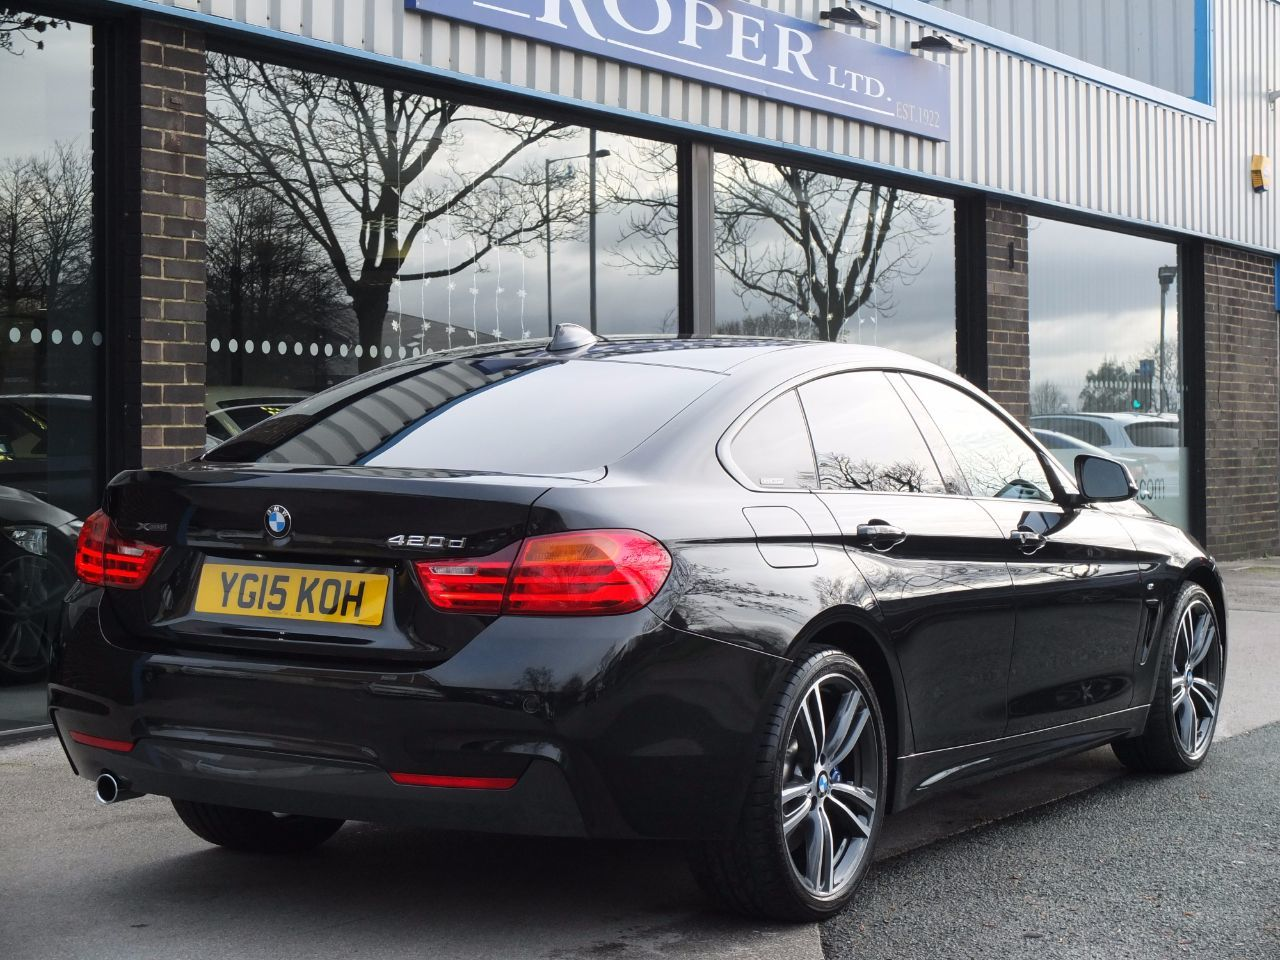 BMW 4 Series 2.0 Gran Coupe 420d xDrive M Sport Auto (M Sport Plus and Media) Coupe Diesel Black Sapphire Metallic